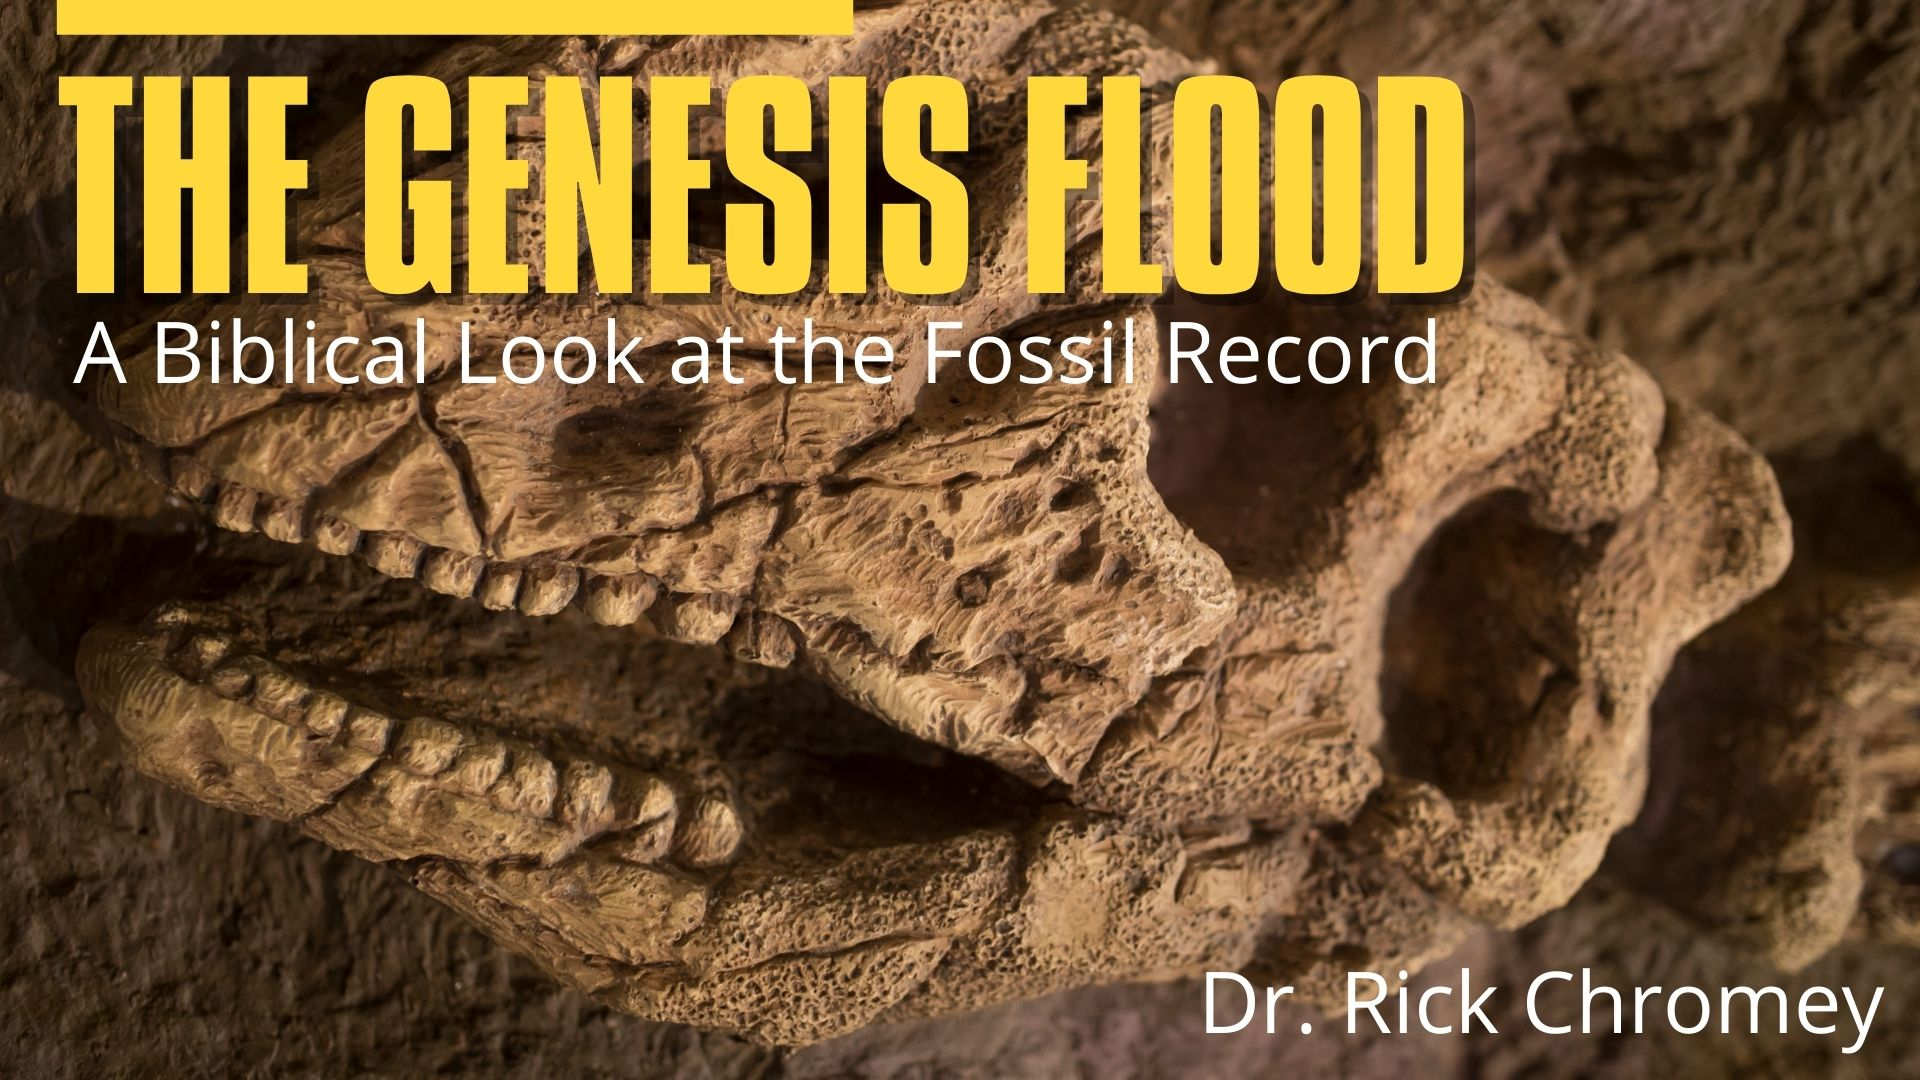 TITLE.Genesis Flood.A Biblical Look at the Fossil Record